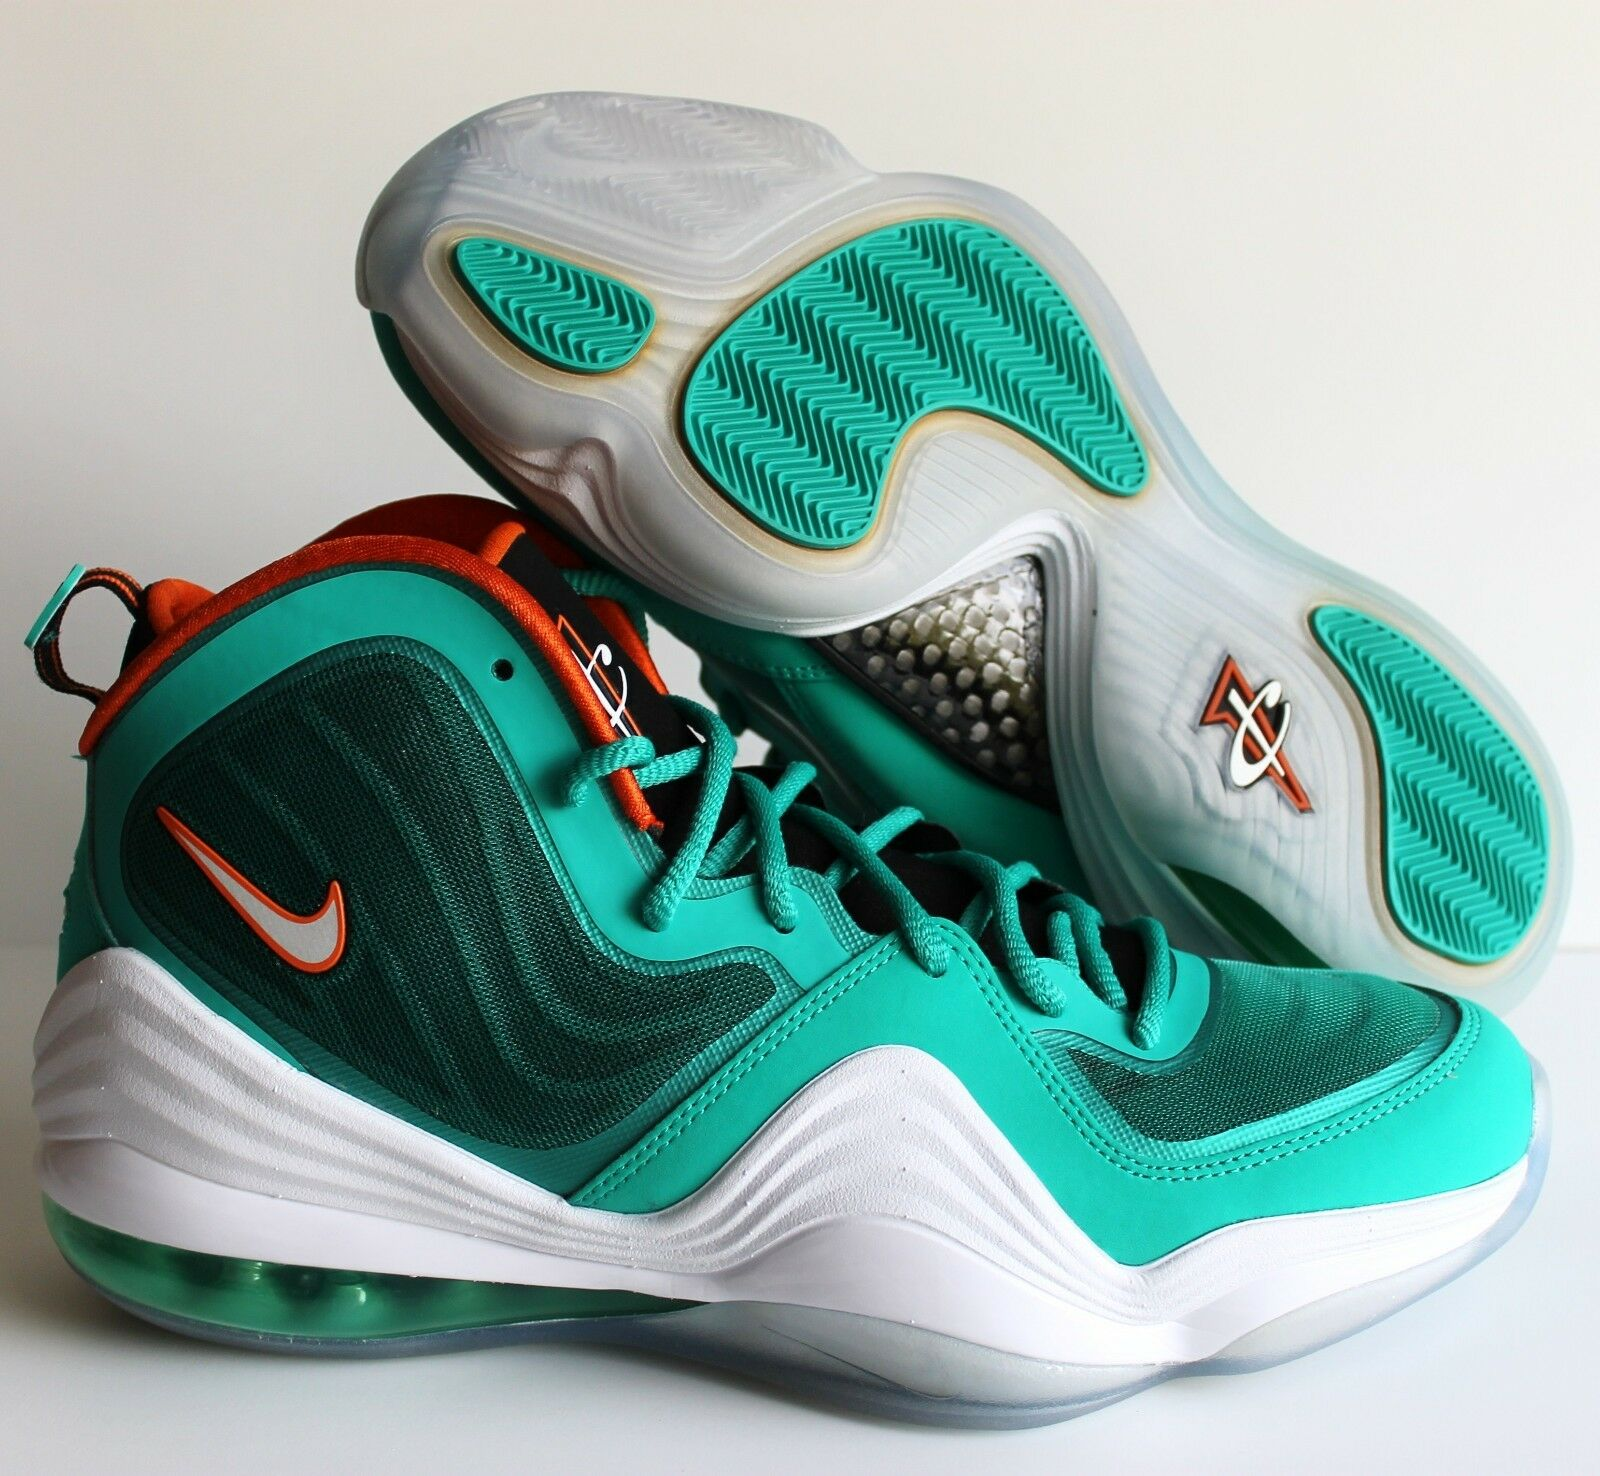 NIKE AIR AIR AIR PENNY V NEW GREEN-WHITE-ORANGE MIAMI DOLPHINS SZ 9 [537331-300] cd17ba